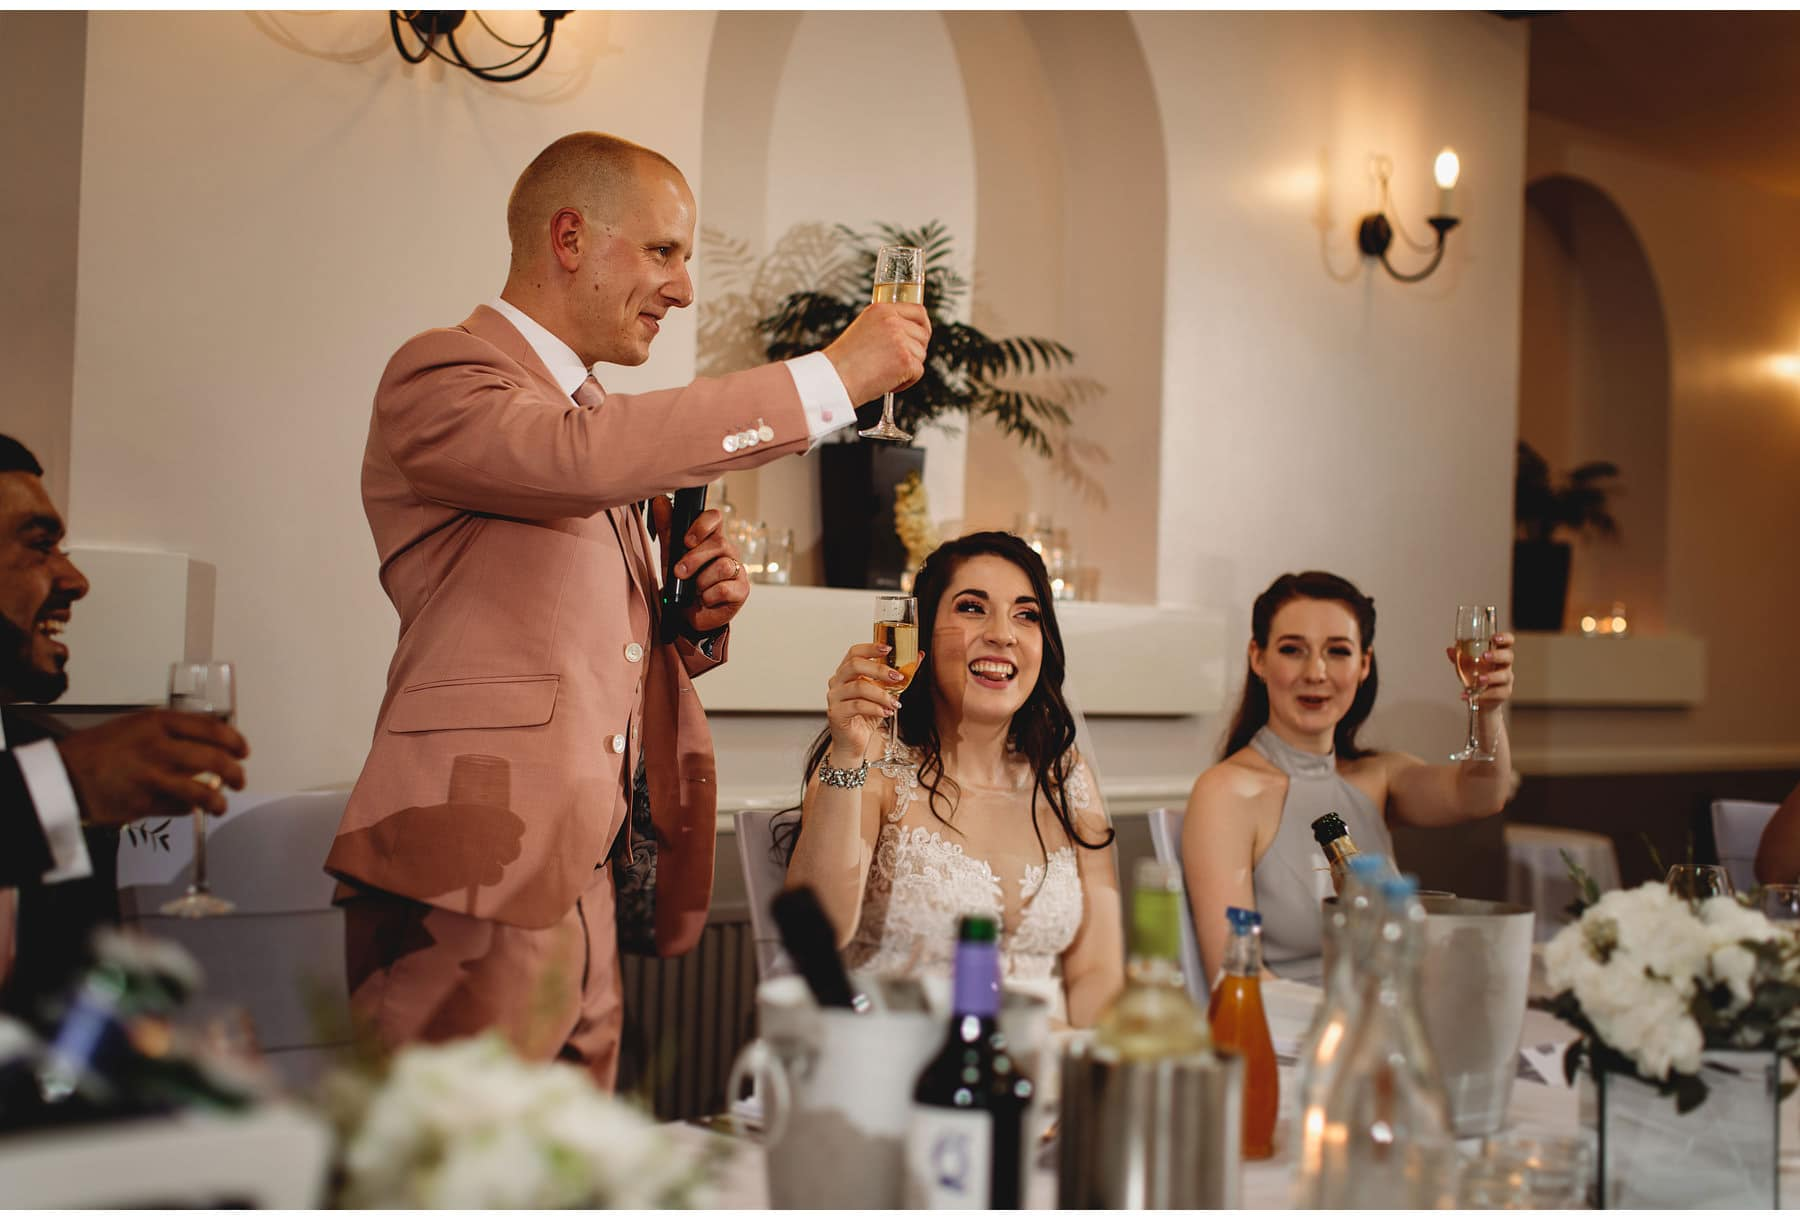 the groom making a toast